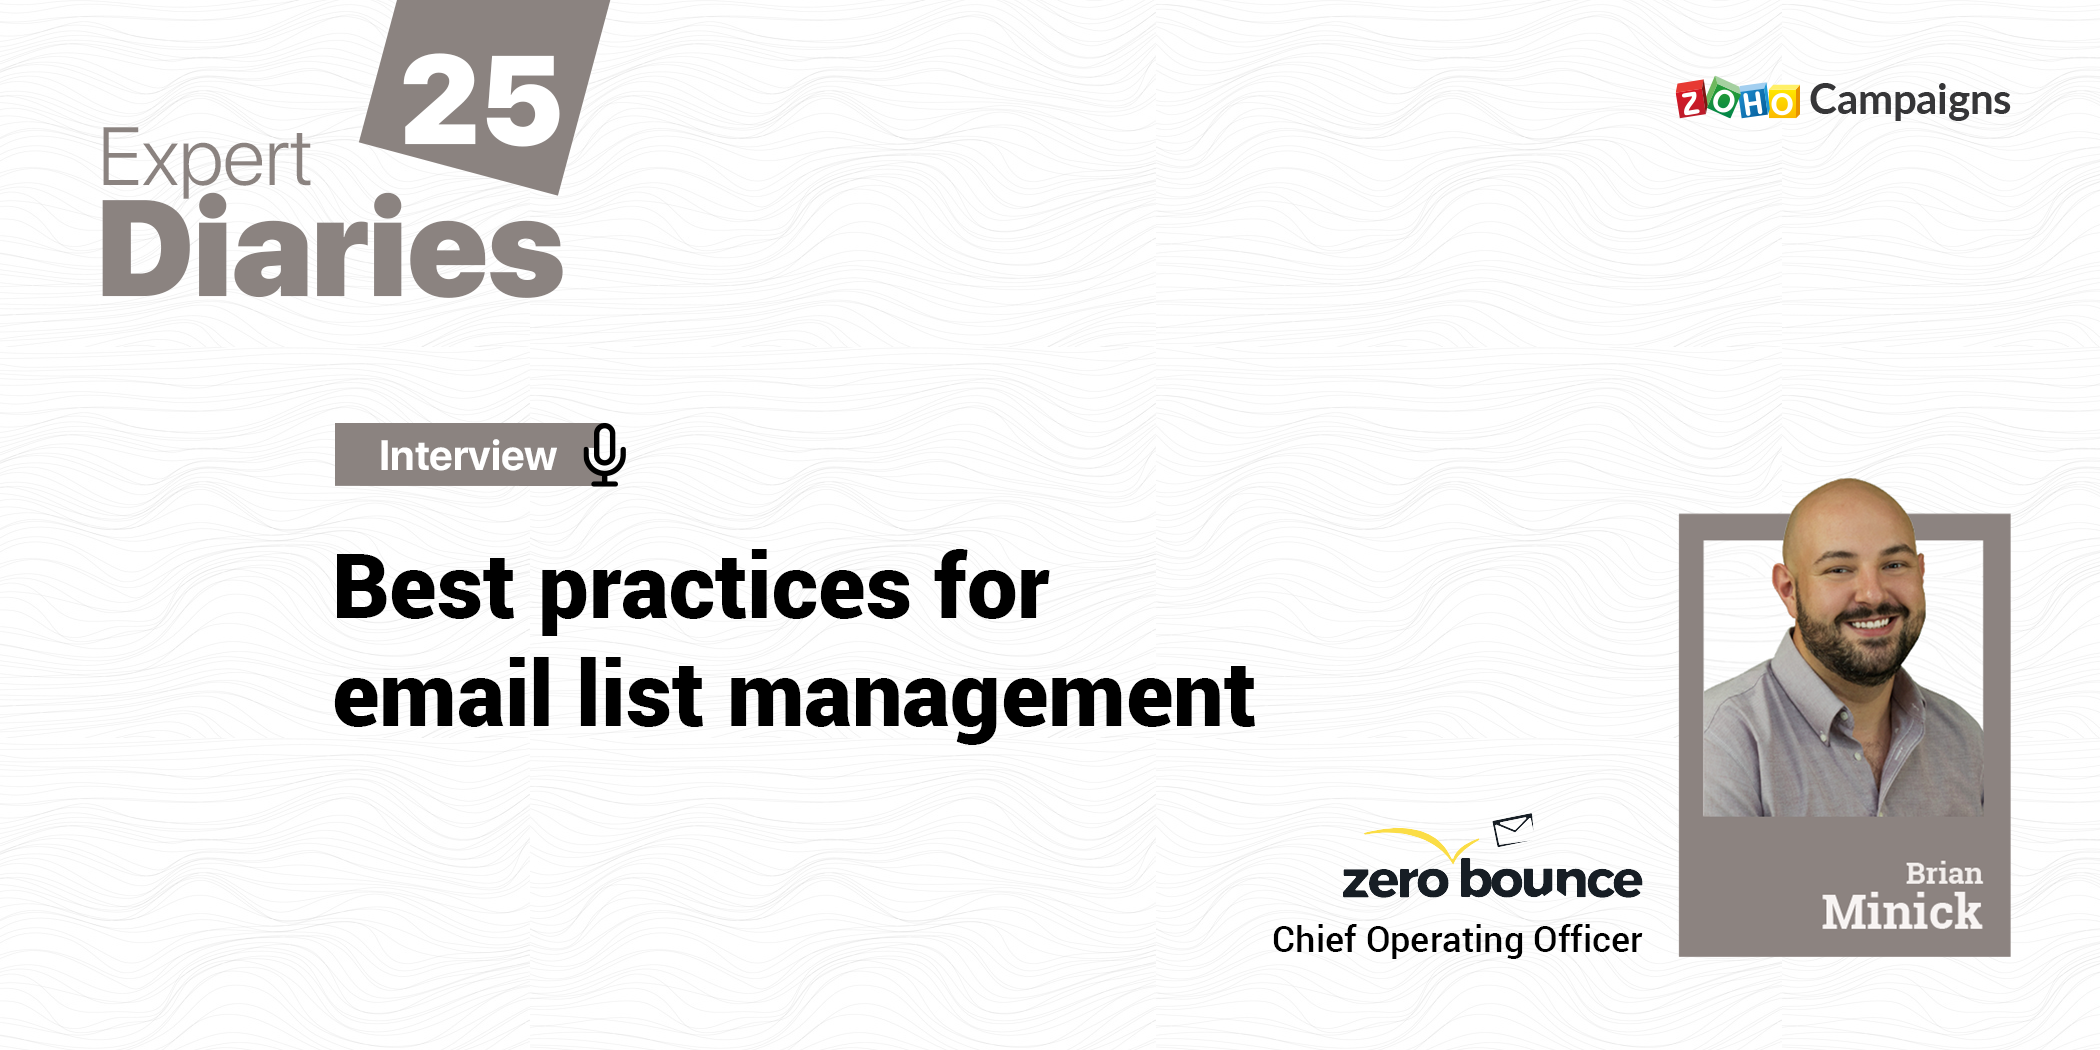 Best practices for email list management